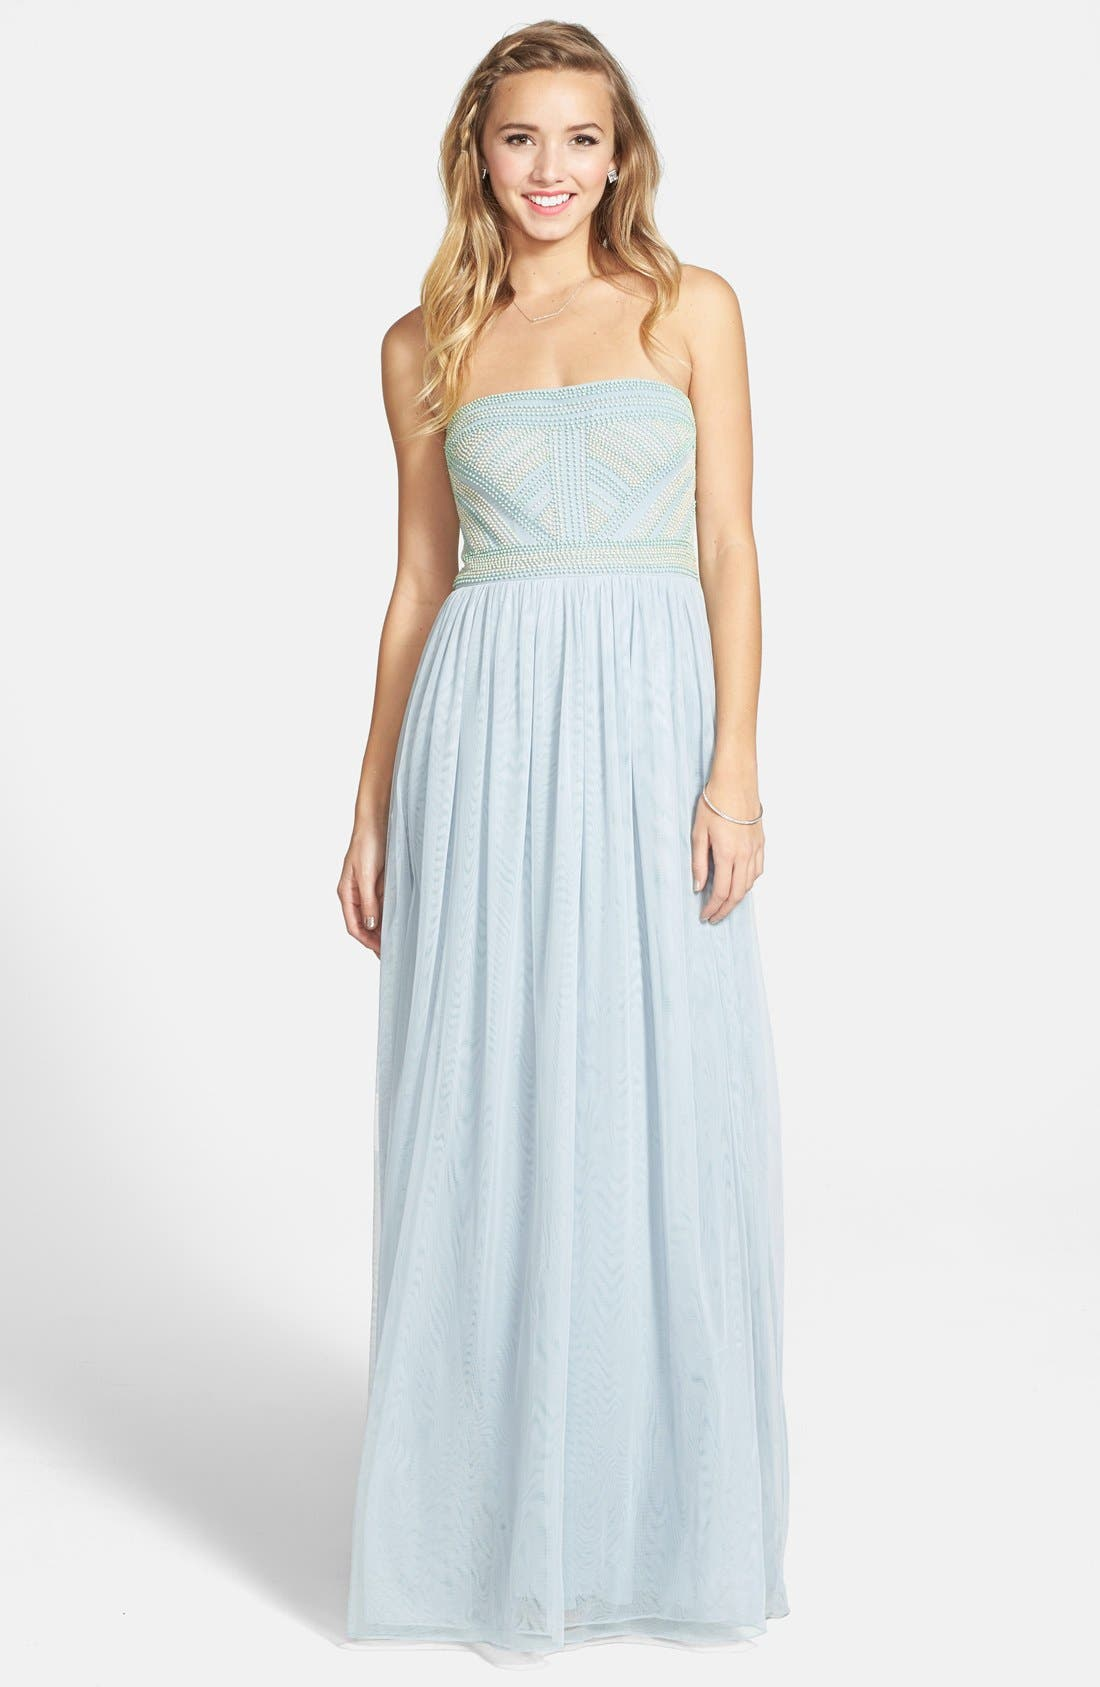 Alternate Image 1 Selected - Adrianna Papell Beaded Chiffon Strapless Gown